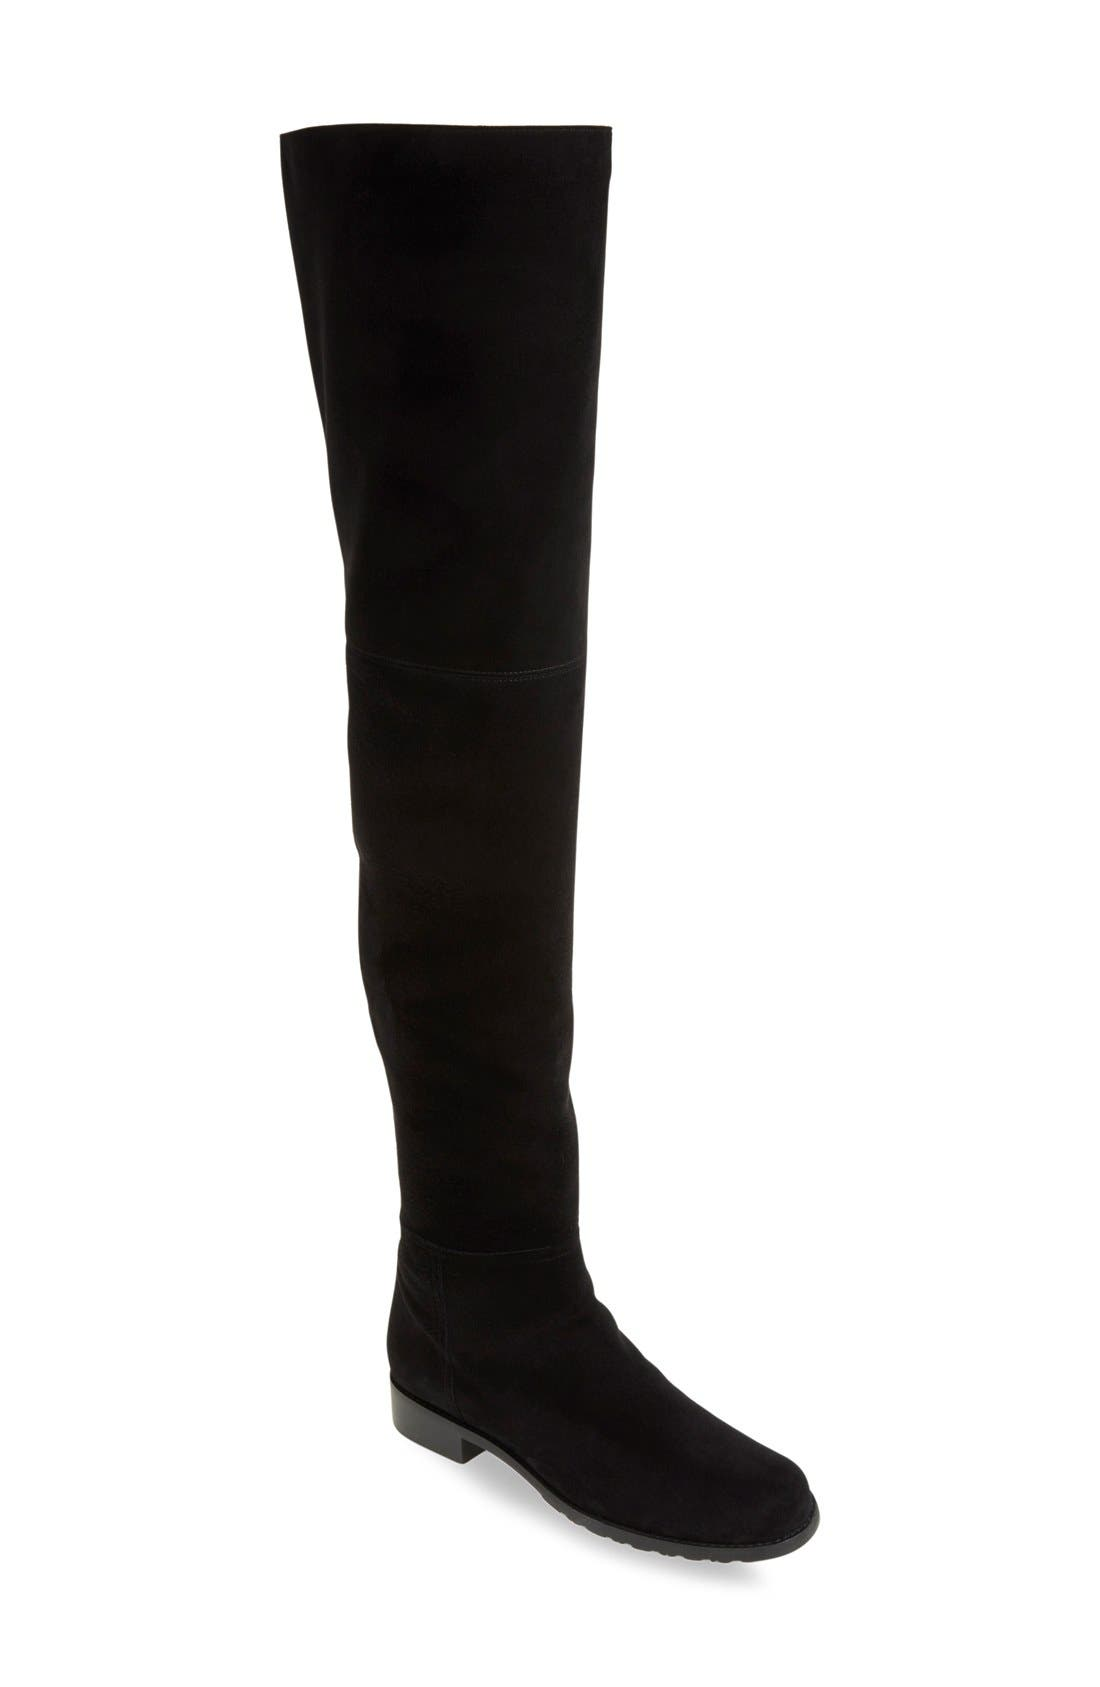 Alternate Image 1 Selected - Stuart Weitzman 'Hilo' Thigh High Boot (Women) (Nordstrom Exclusive)